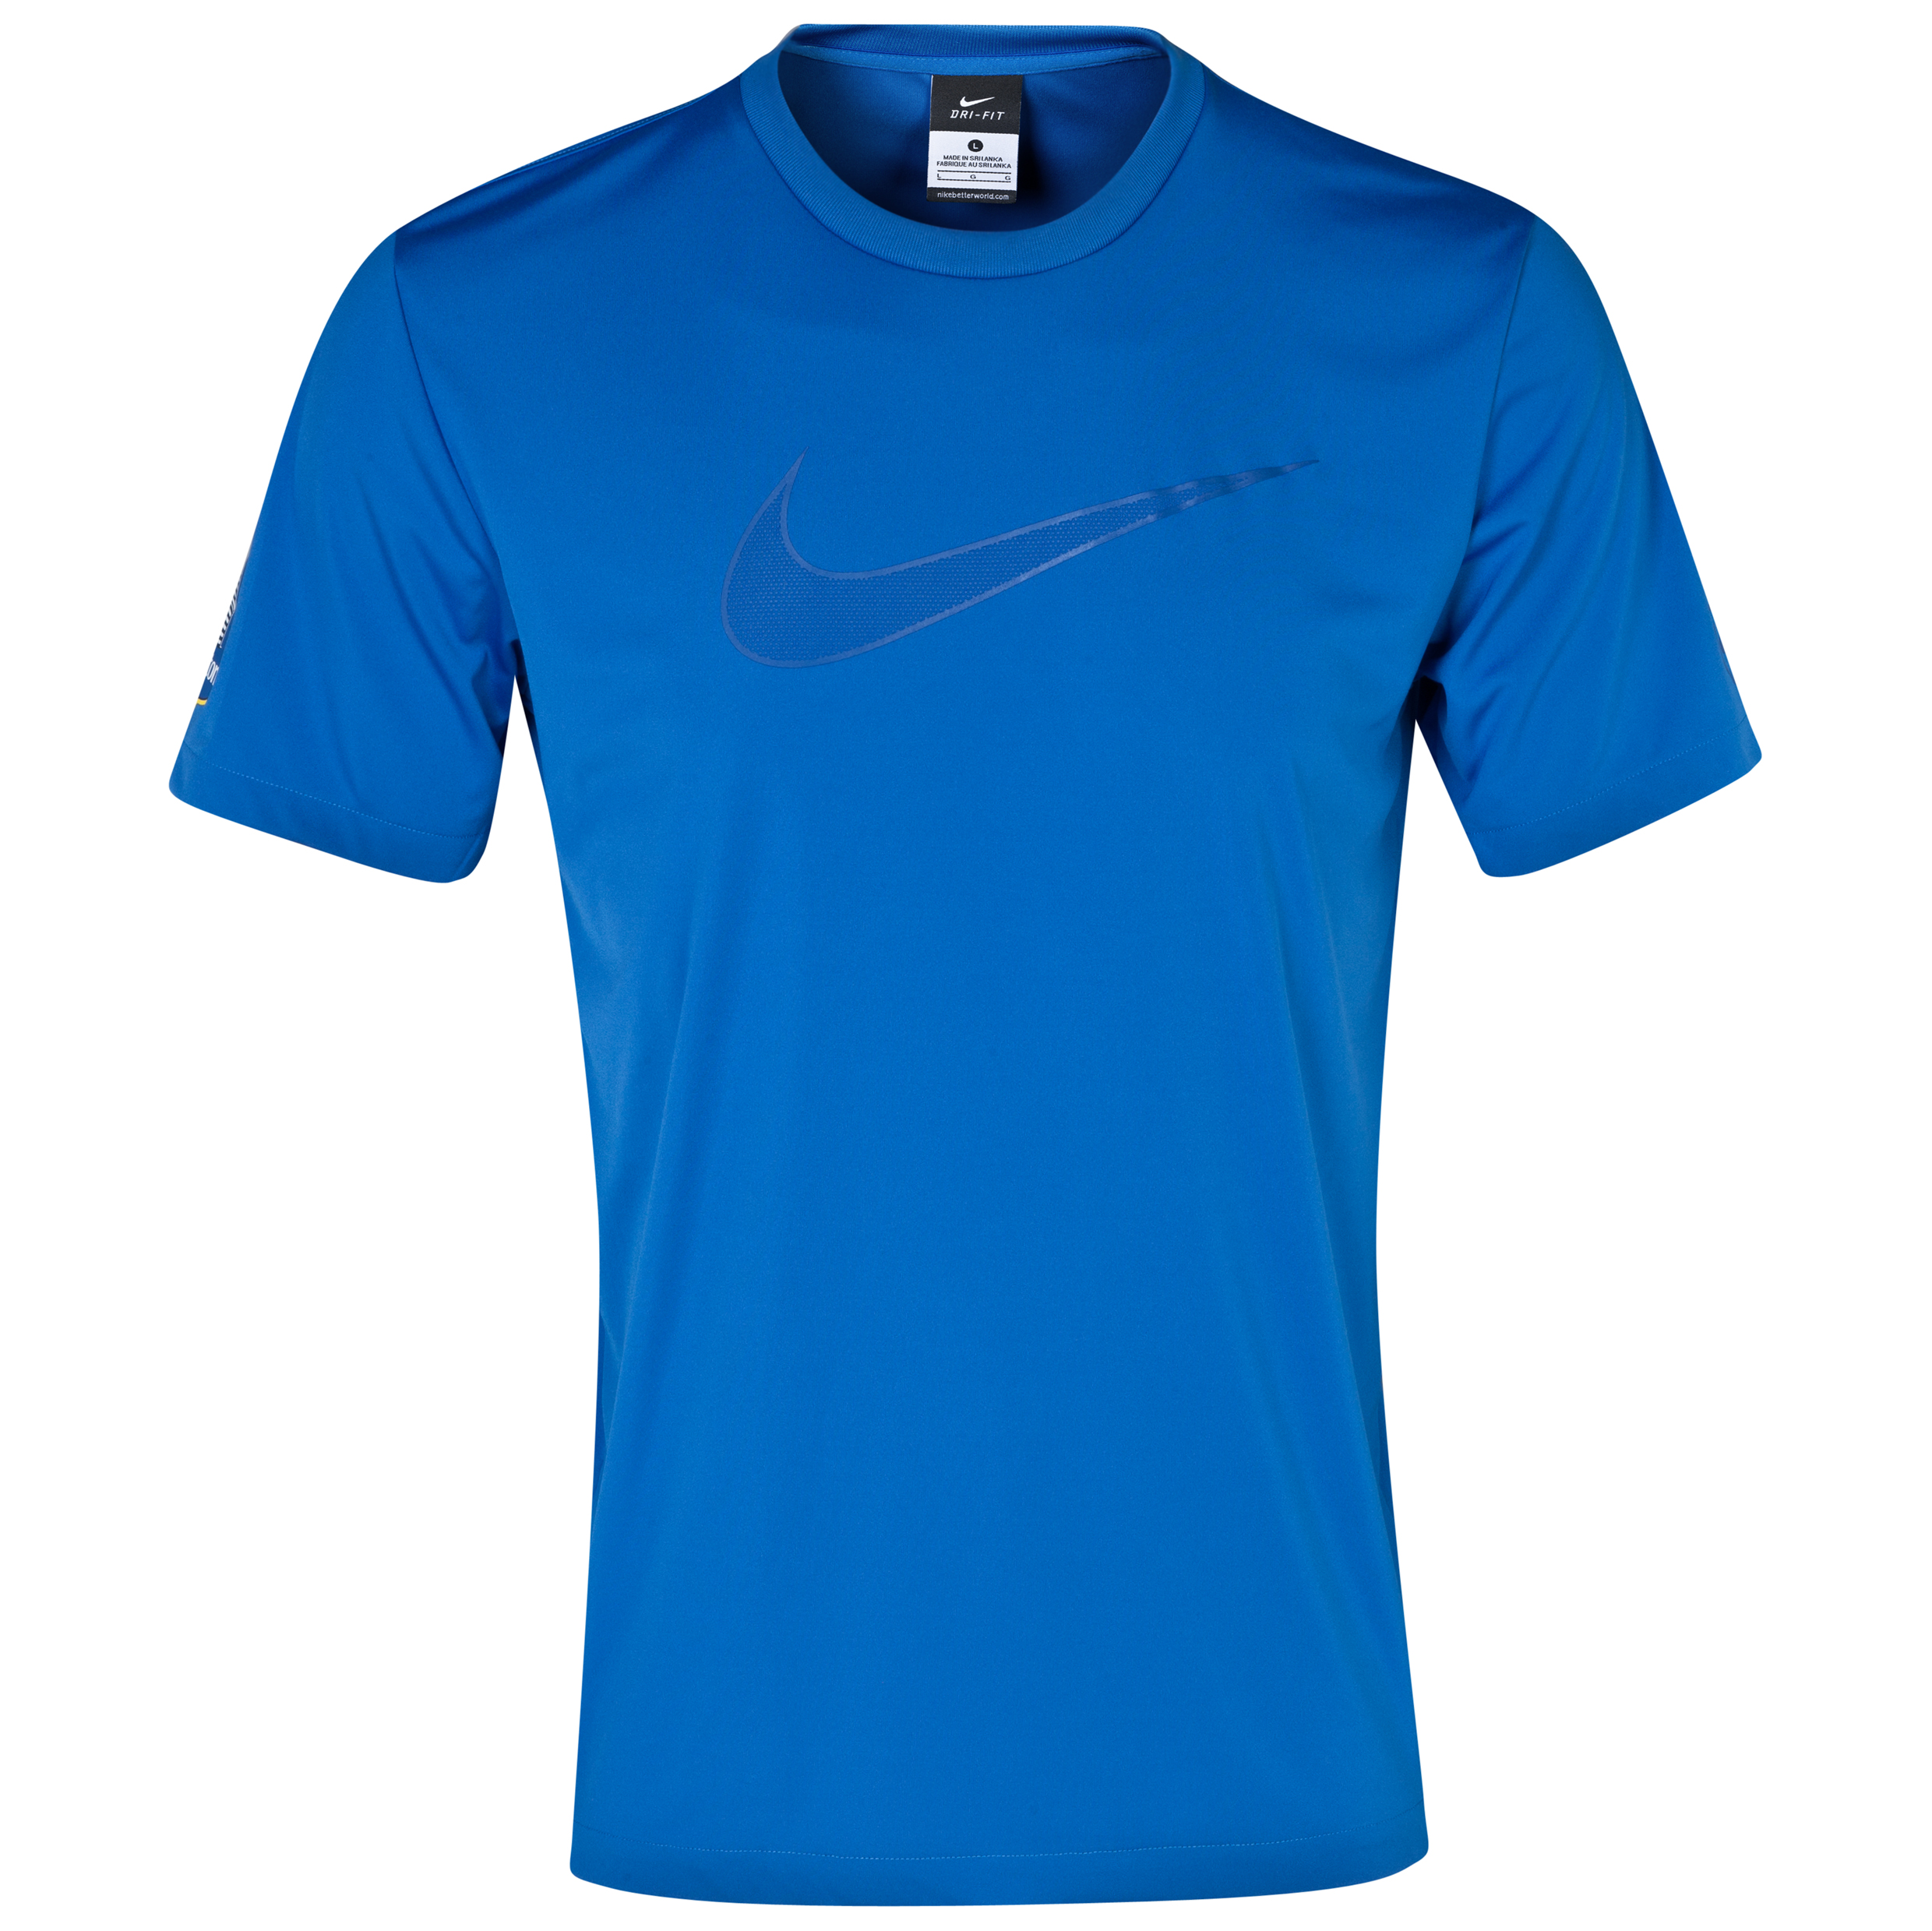 Everton Leisure T-Shirt Royal Blue